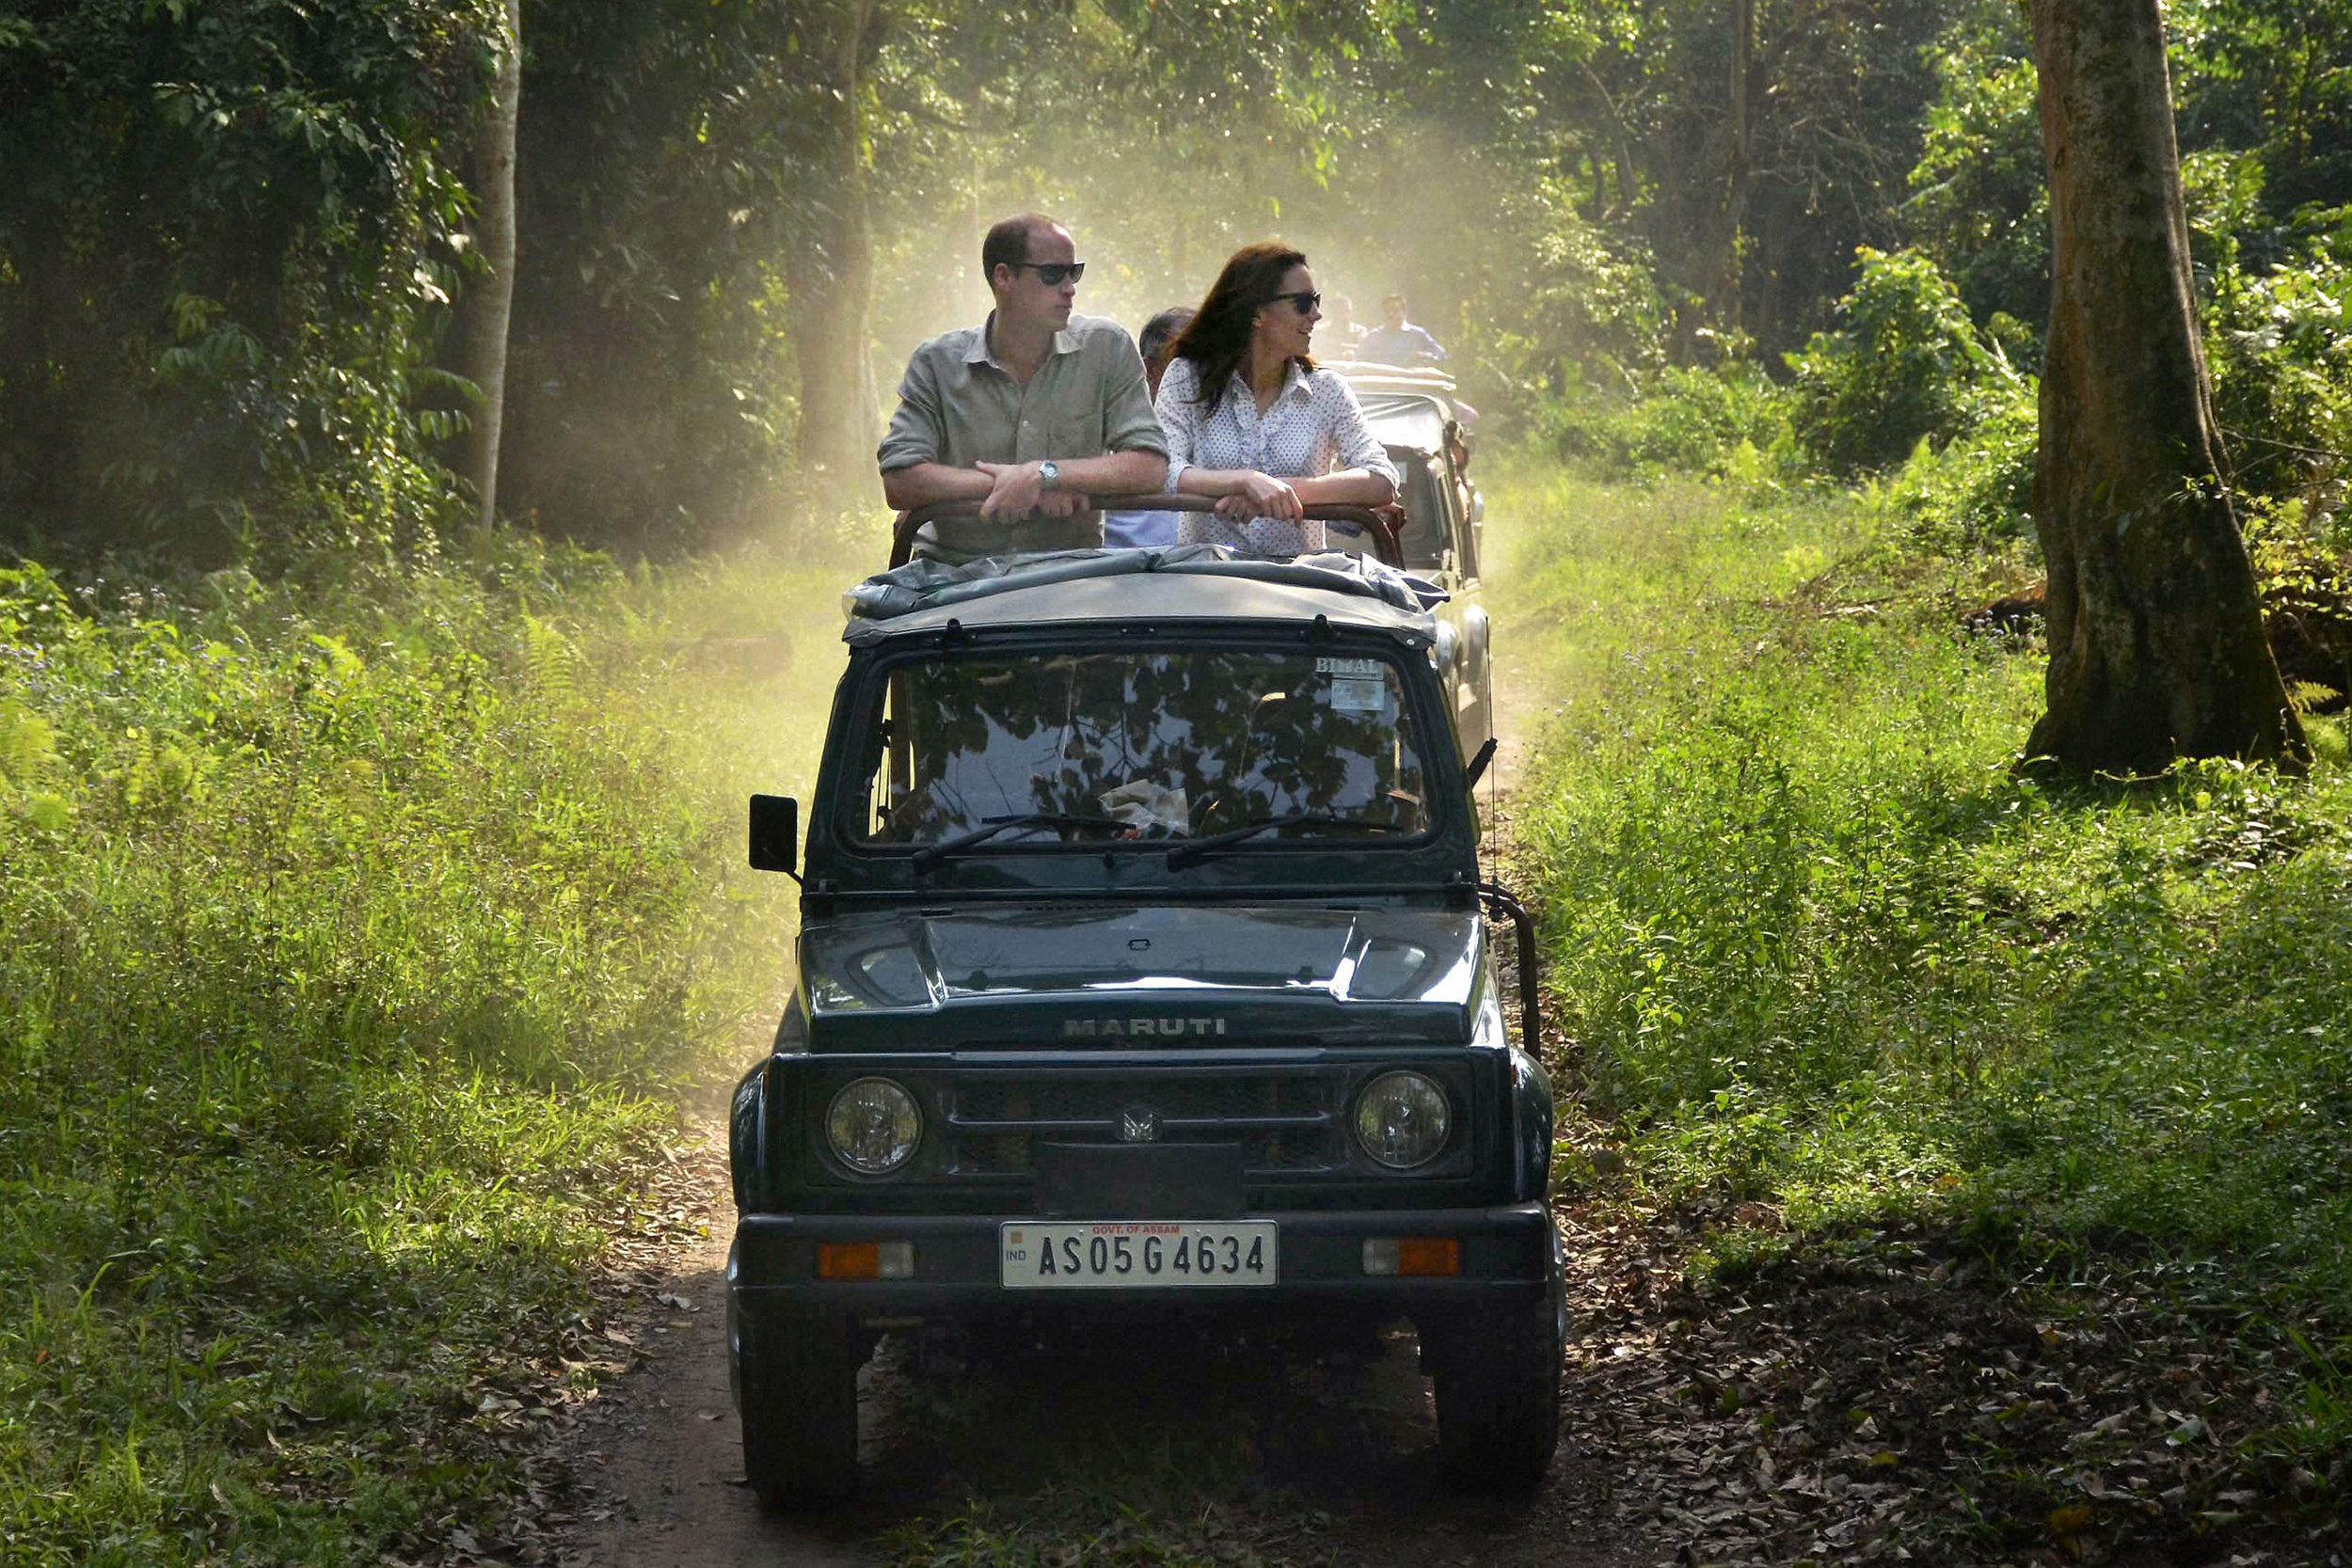 Prince William and Kate, the Duchess of Cambridge take an open vehicle safari inside the Kaziranga National Park, east of Gauhati, northeastern Assam state, India on April 13, 2016. The royal couple spent several hours at the Kaziranga National Park in hopes of drawing attention to the plight of endangered animals, including the park's 2,200-population of a rare, one-horned rhinos.